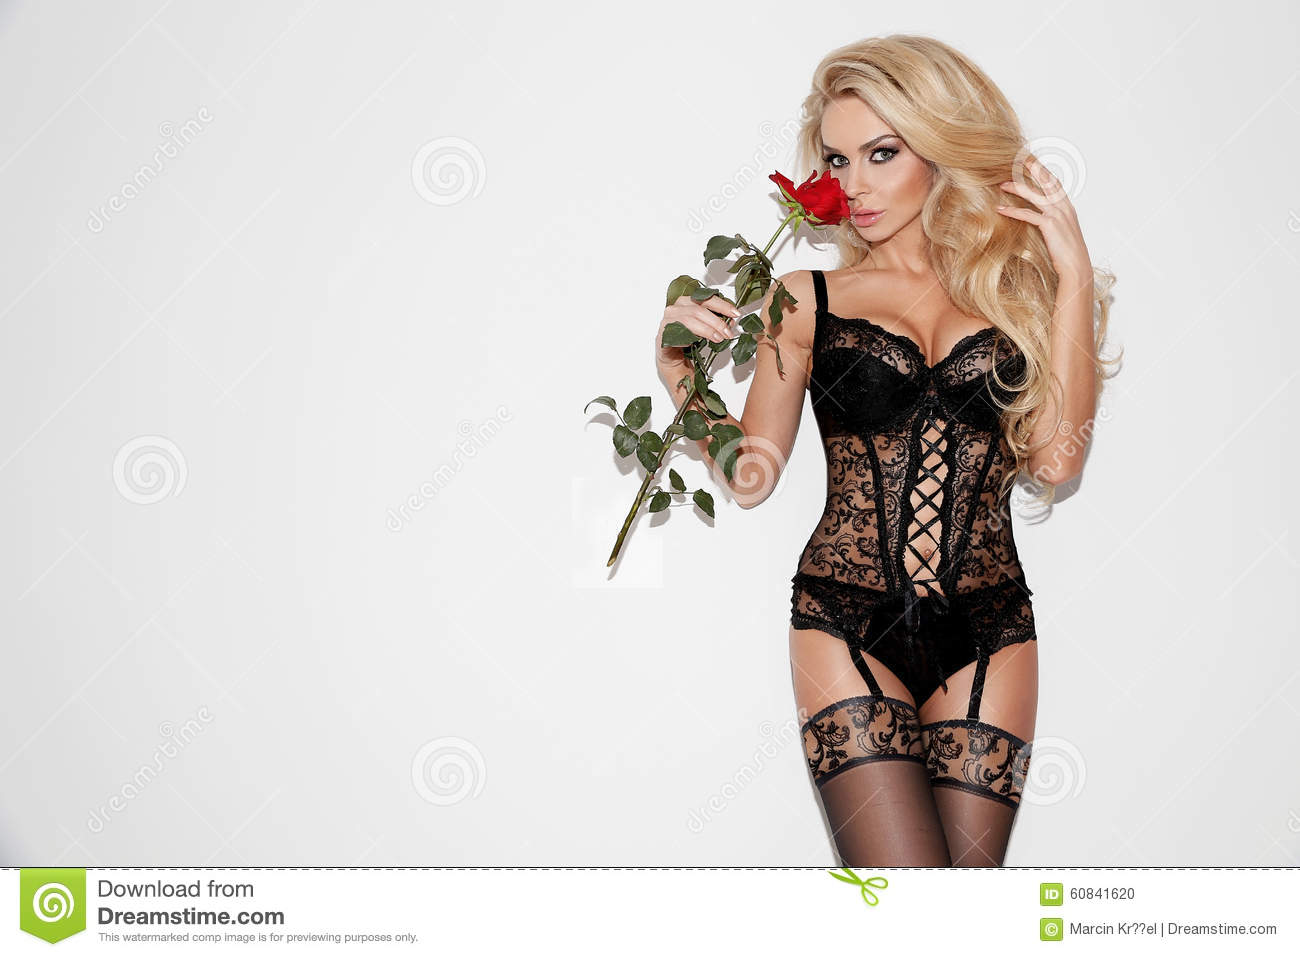 124697304fdd Beautiful woman blonde hair green eyes in black lingerie with the red rose  in hand